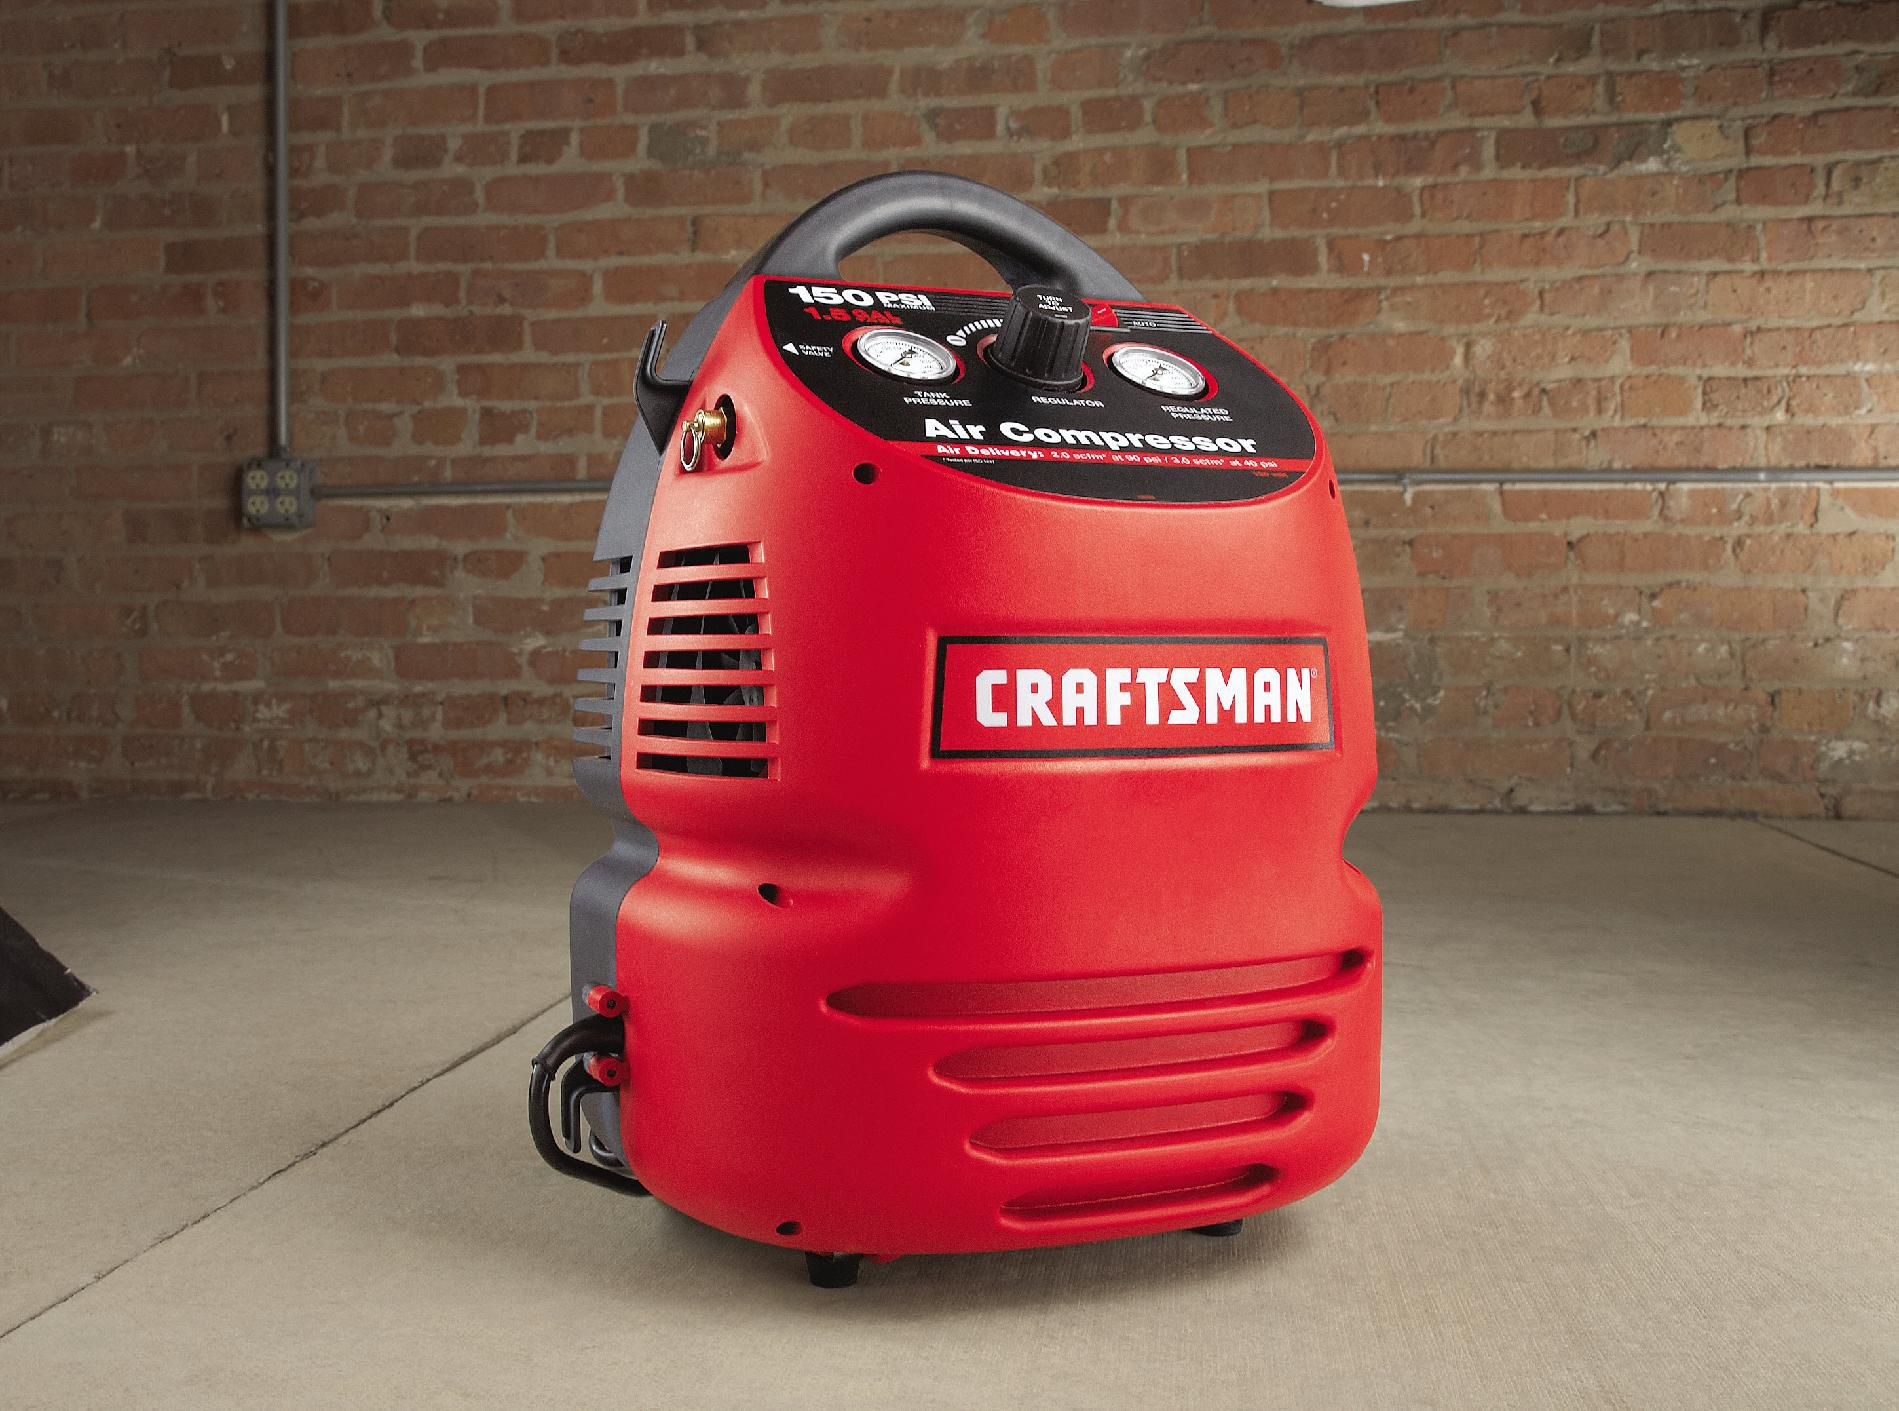 Craftsman 1.5 Gallon Portable Air Compressor with Hose and 8PC Accessory Kit